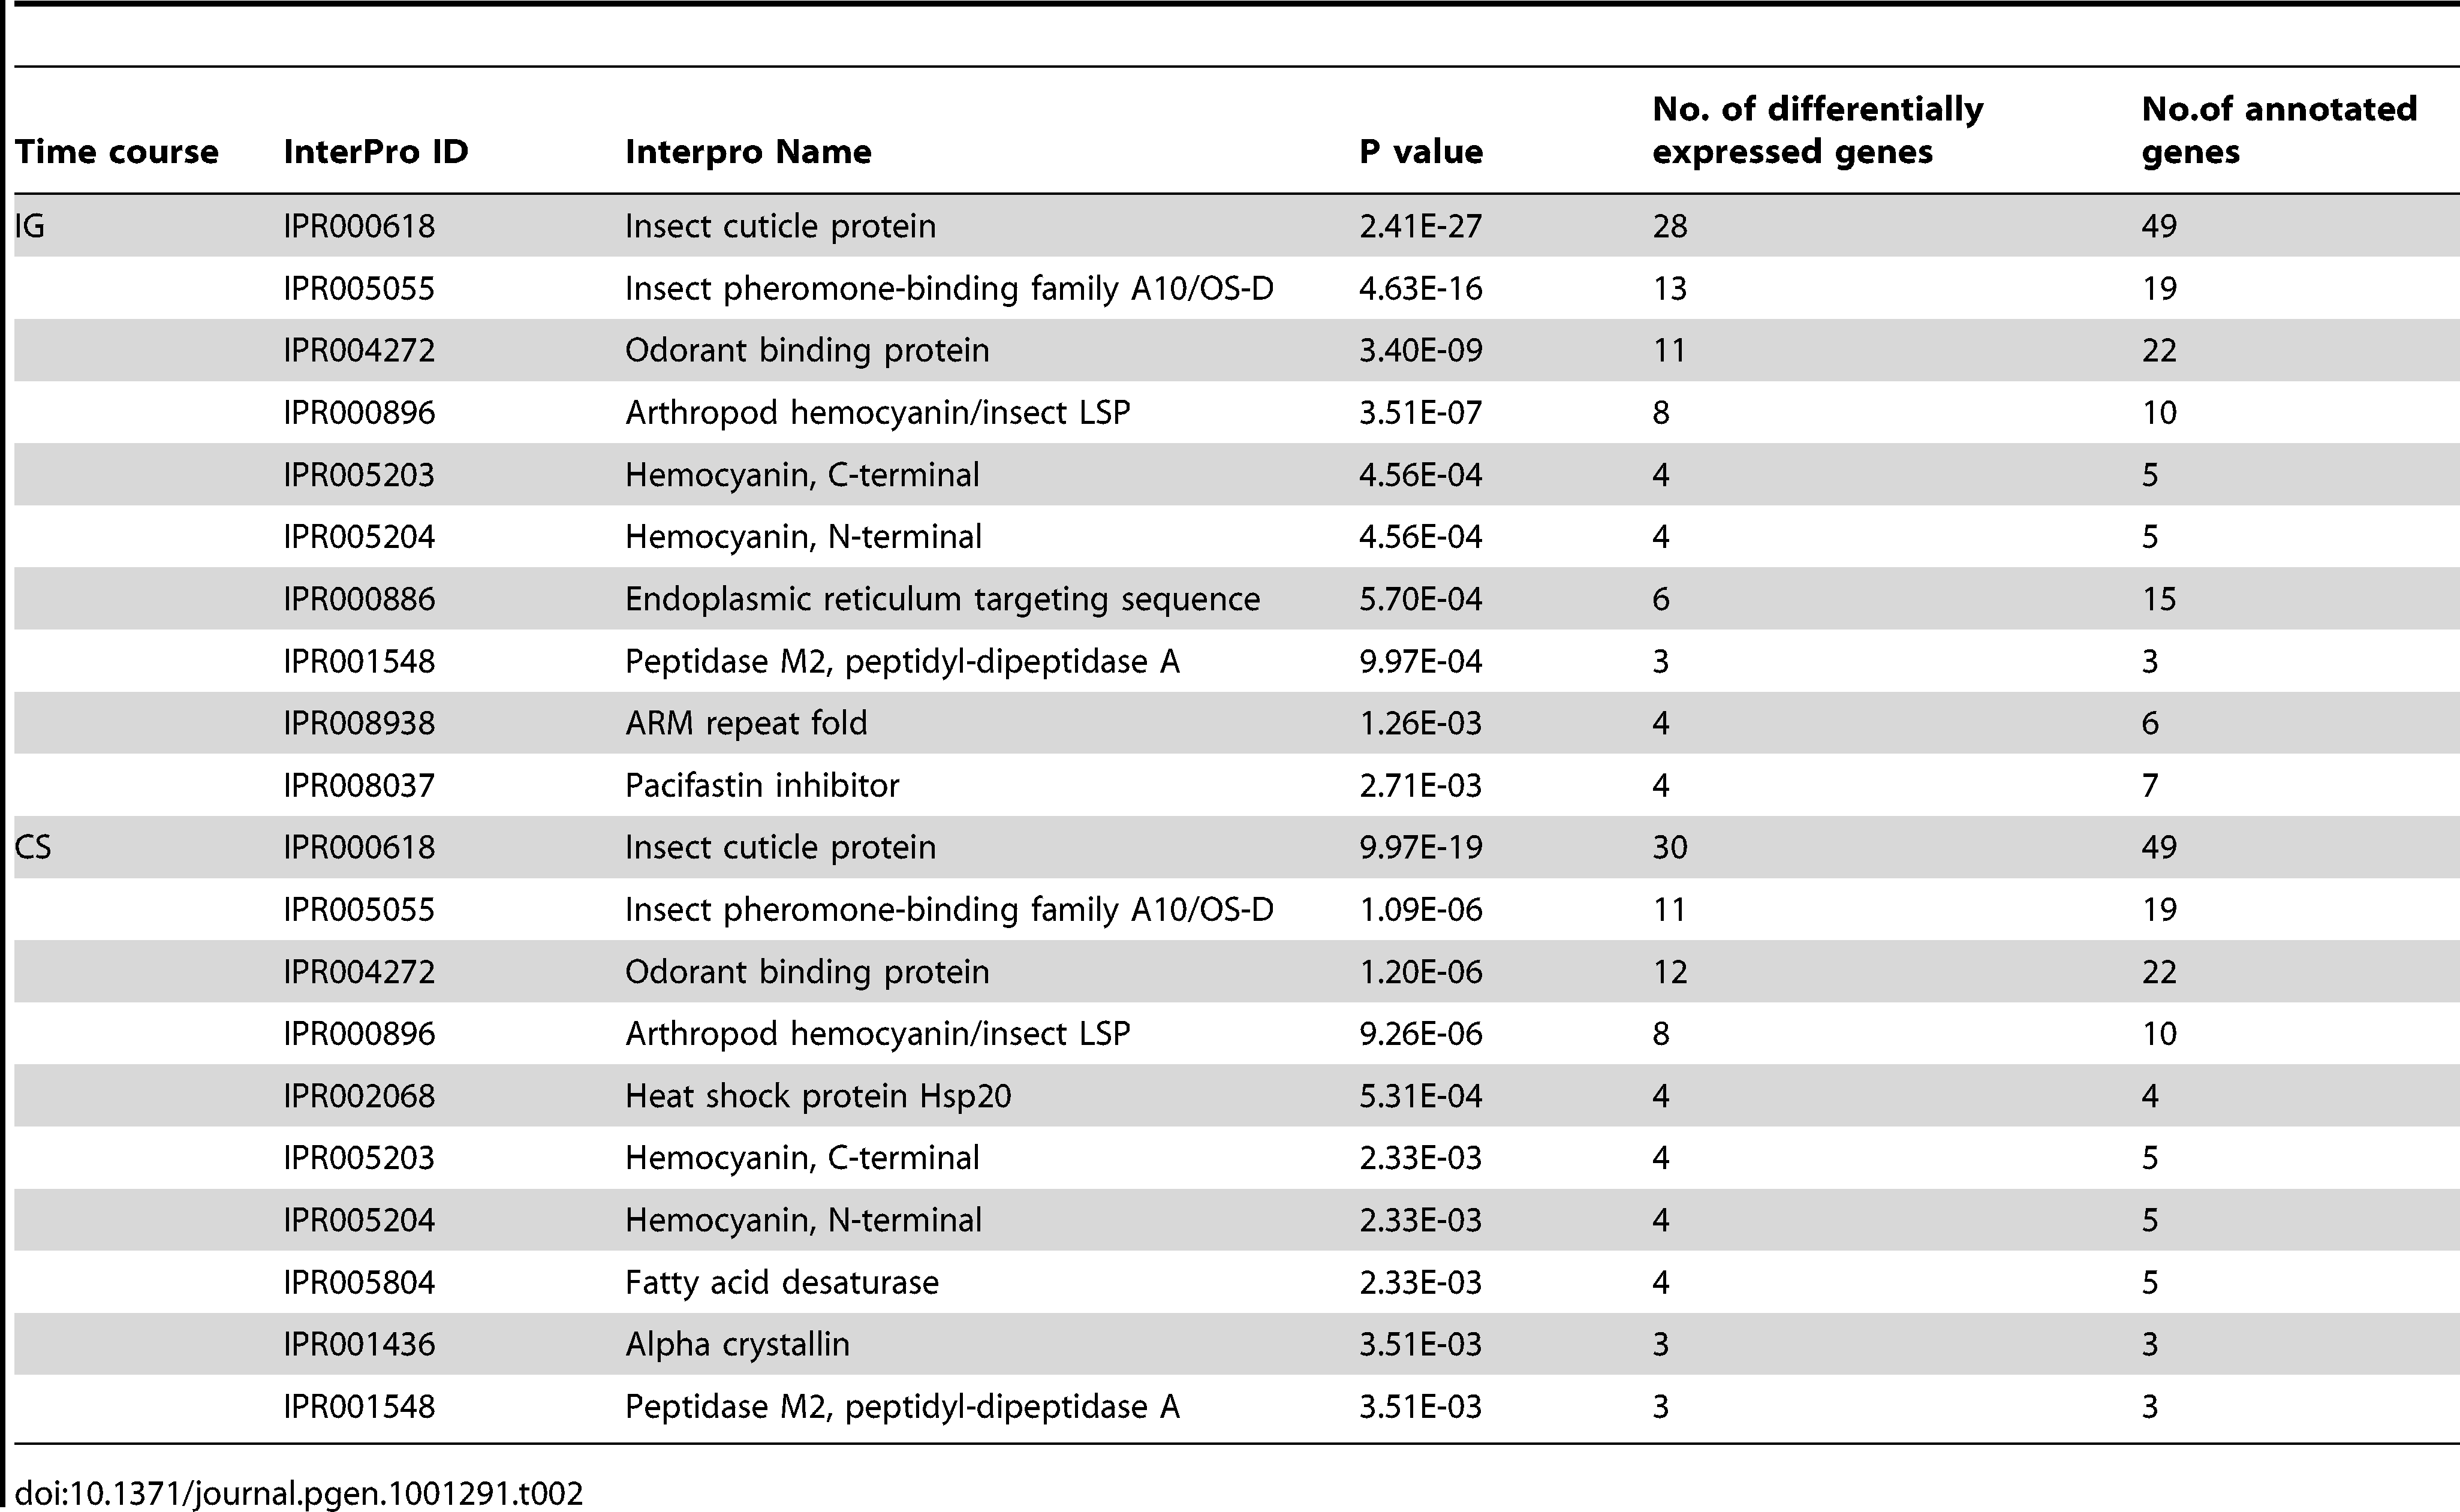 Top ten gene categories enriched in InterPro annotations during the time course of IG or CS.